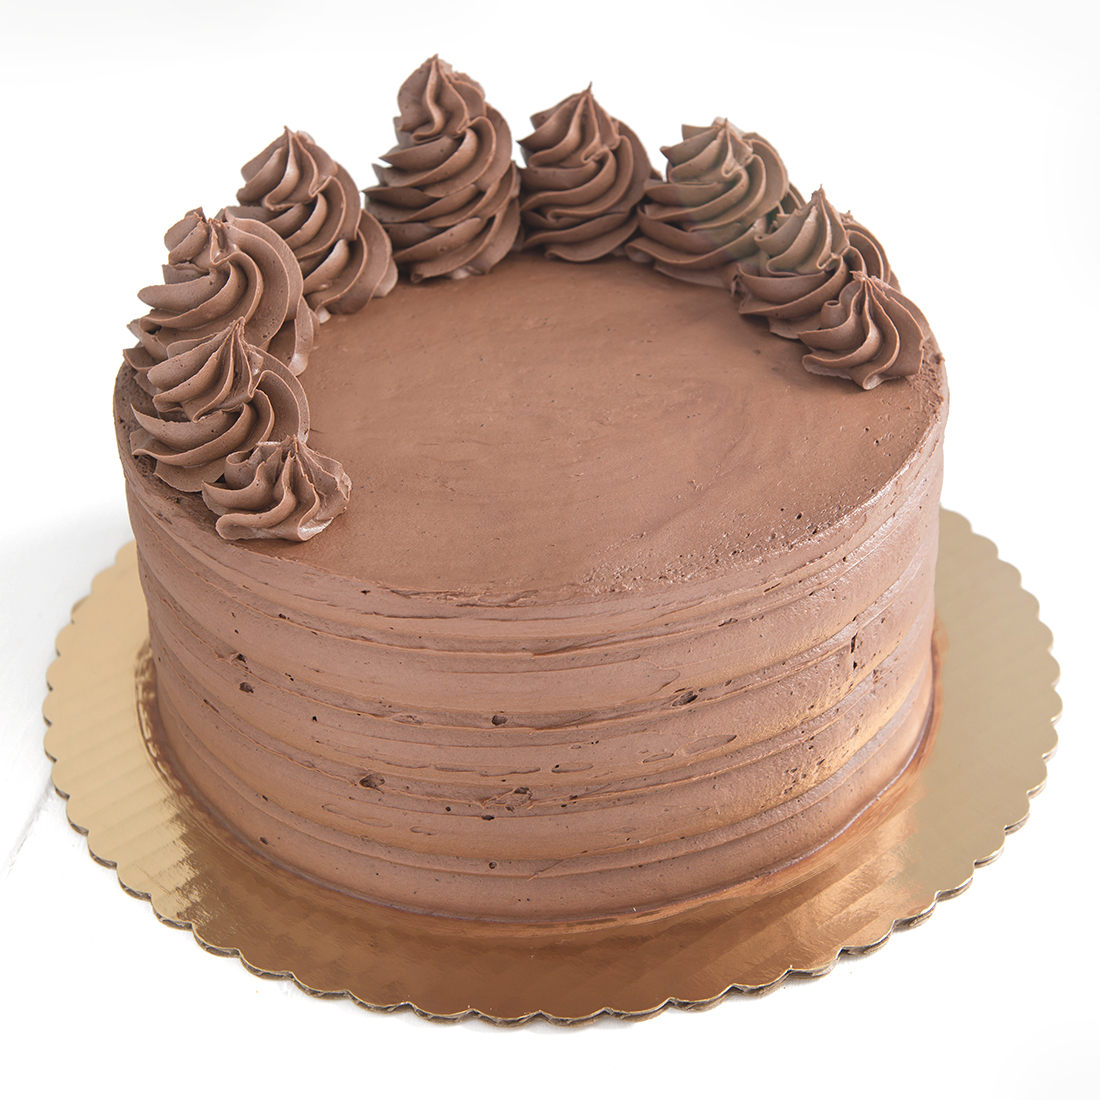 Double Trouble - Chocolate cake filled and frosted with chocolate buttercream6